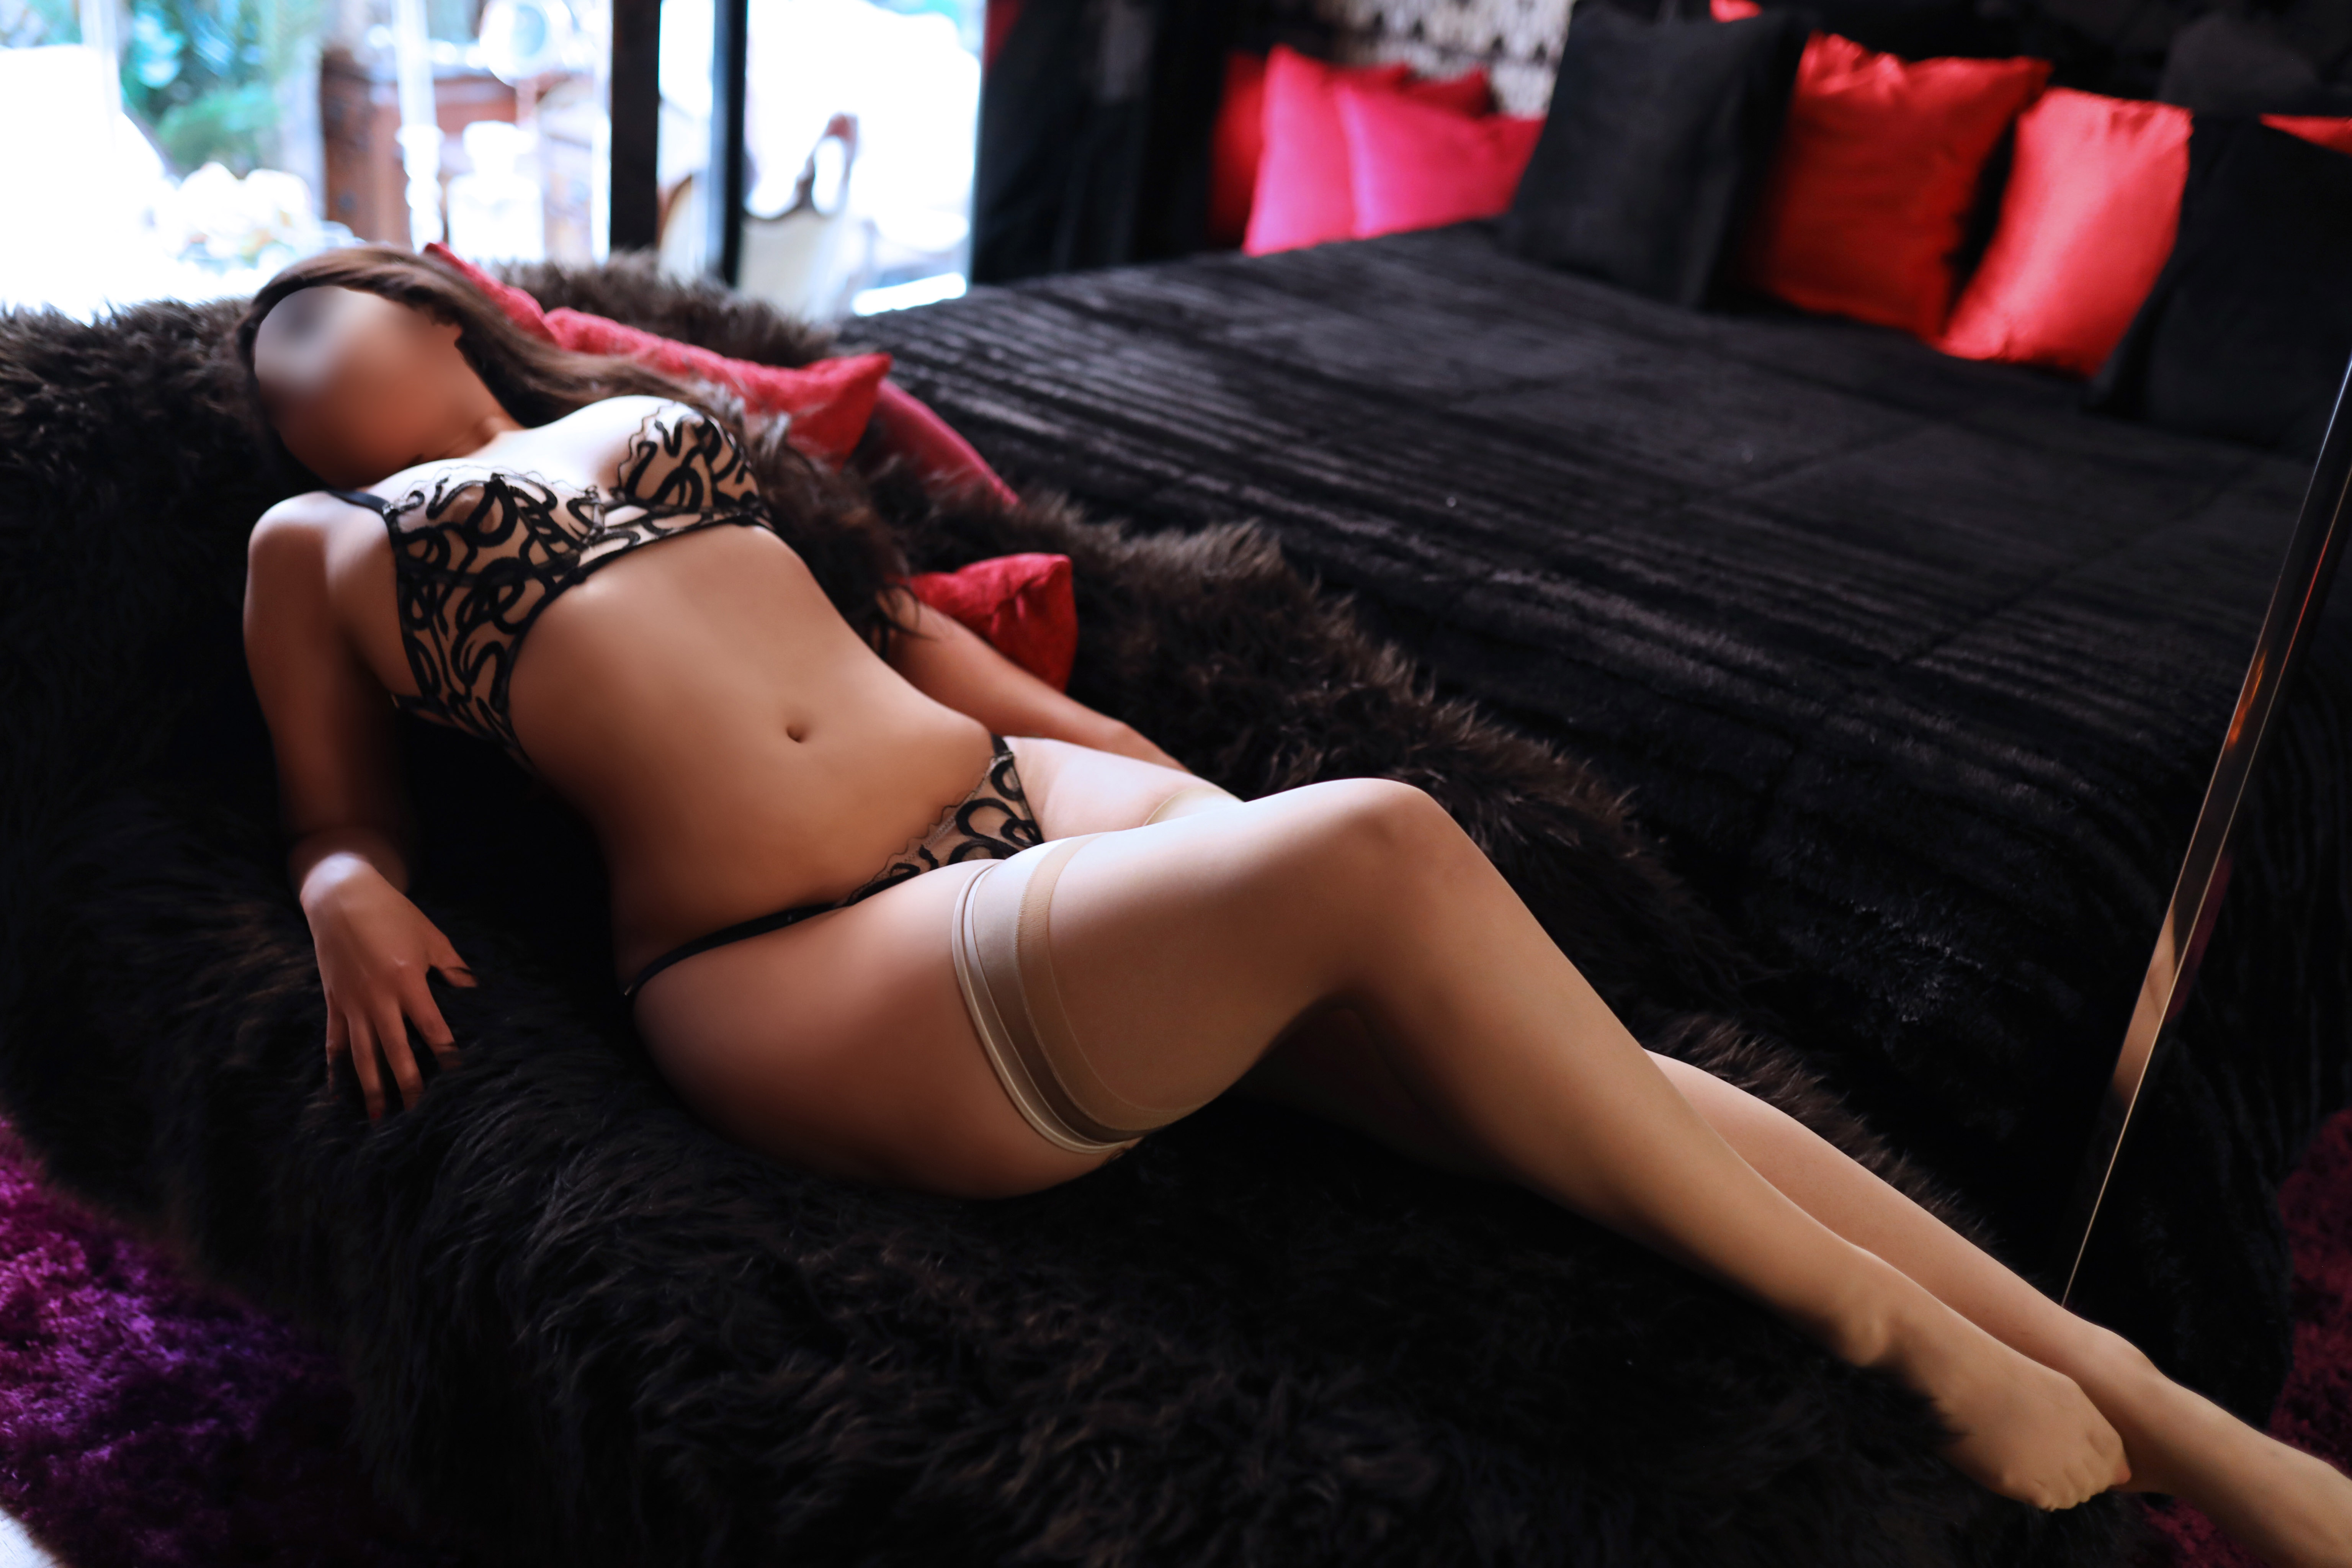 How To Get To Longisland Escort Service In Copiague, Ny By Bus Or Train